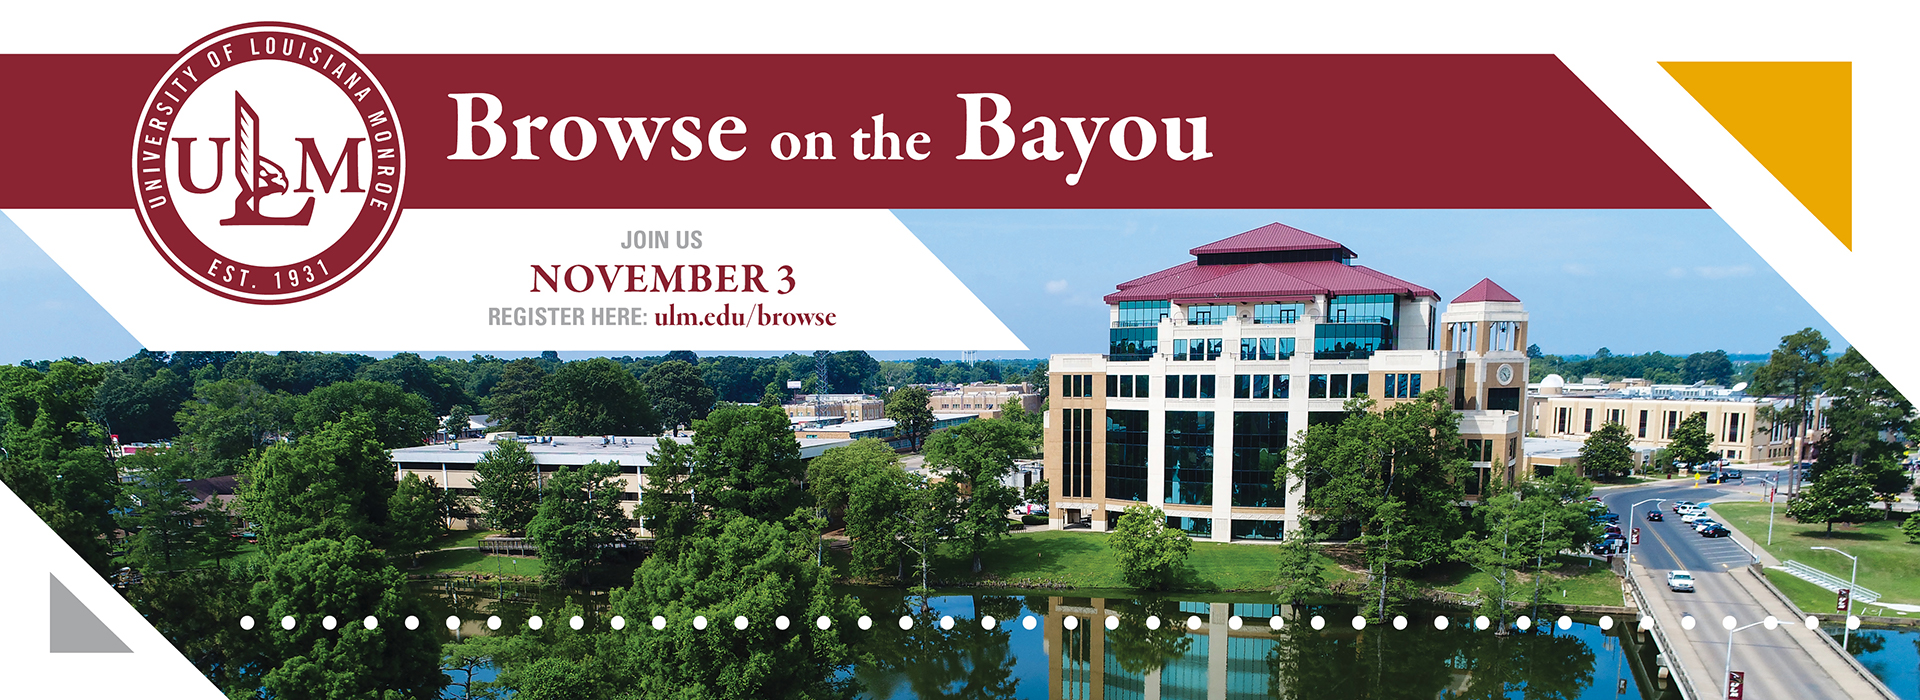 Browse on the Bayou Fall 2018 banner ad